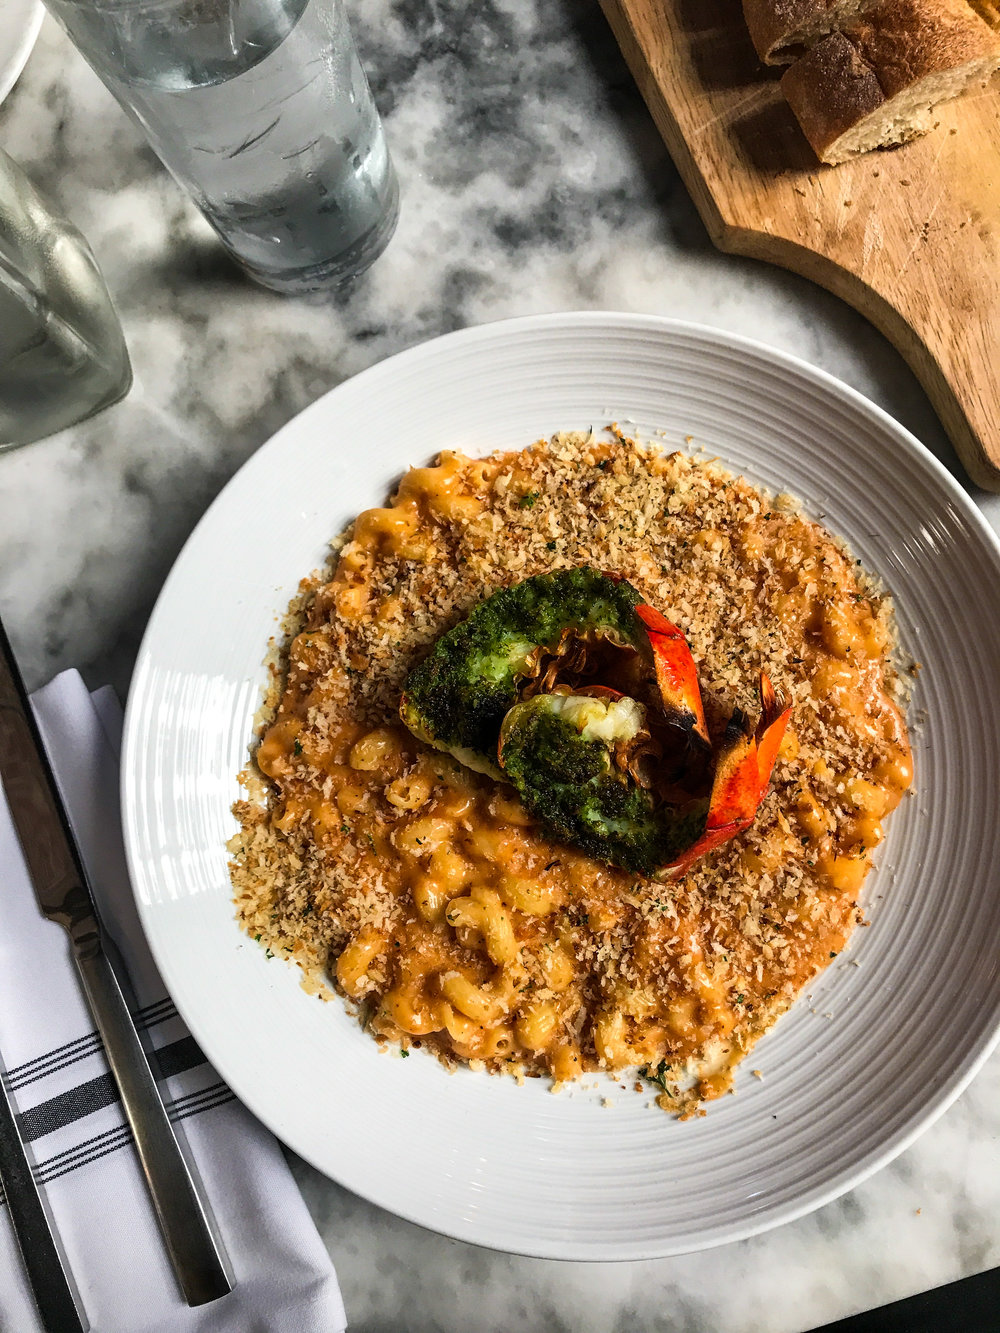 Lobster Mac & Cheese fromThe Artisan House - Poached Maine Lobster, Cavatappi Pasta, Parmesan Cheese, Aged White Cheddar Cheese, Mozzarella Cheese, Panko Bread Crumbs.$20.00